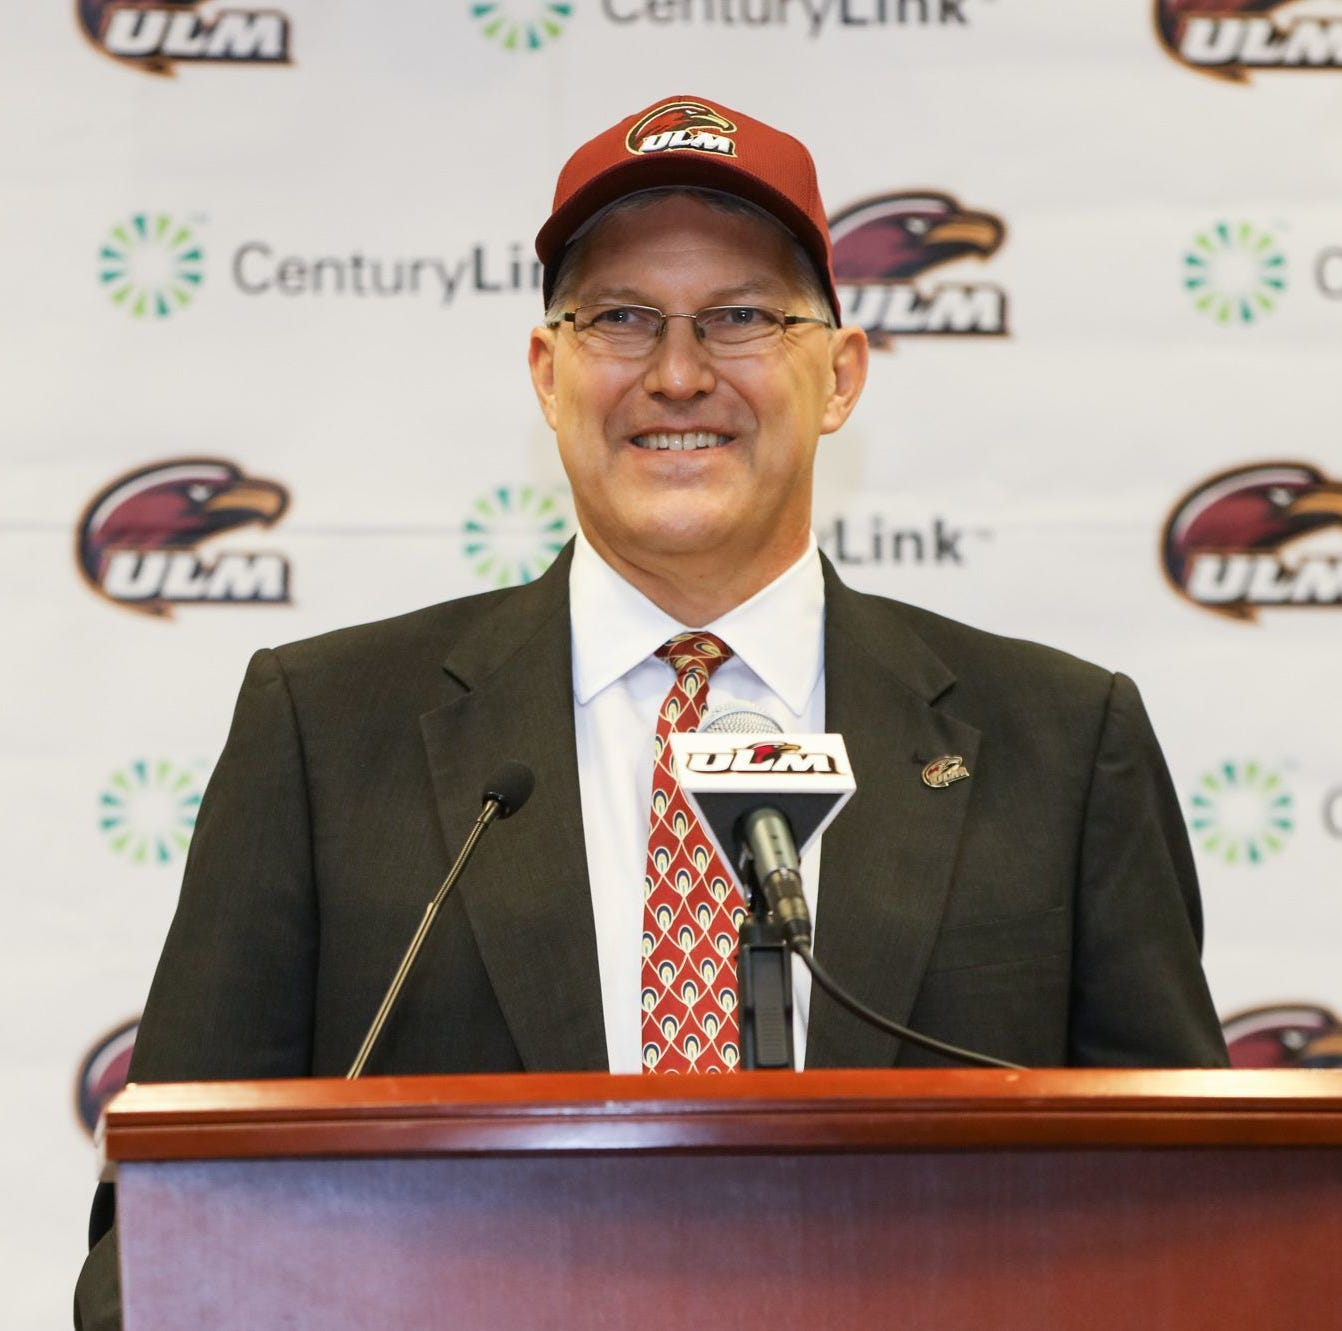 ULM athletic director Floyd resigns